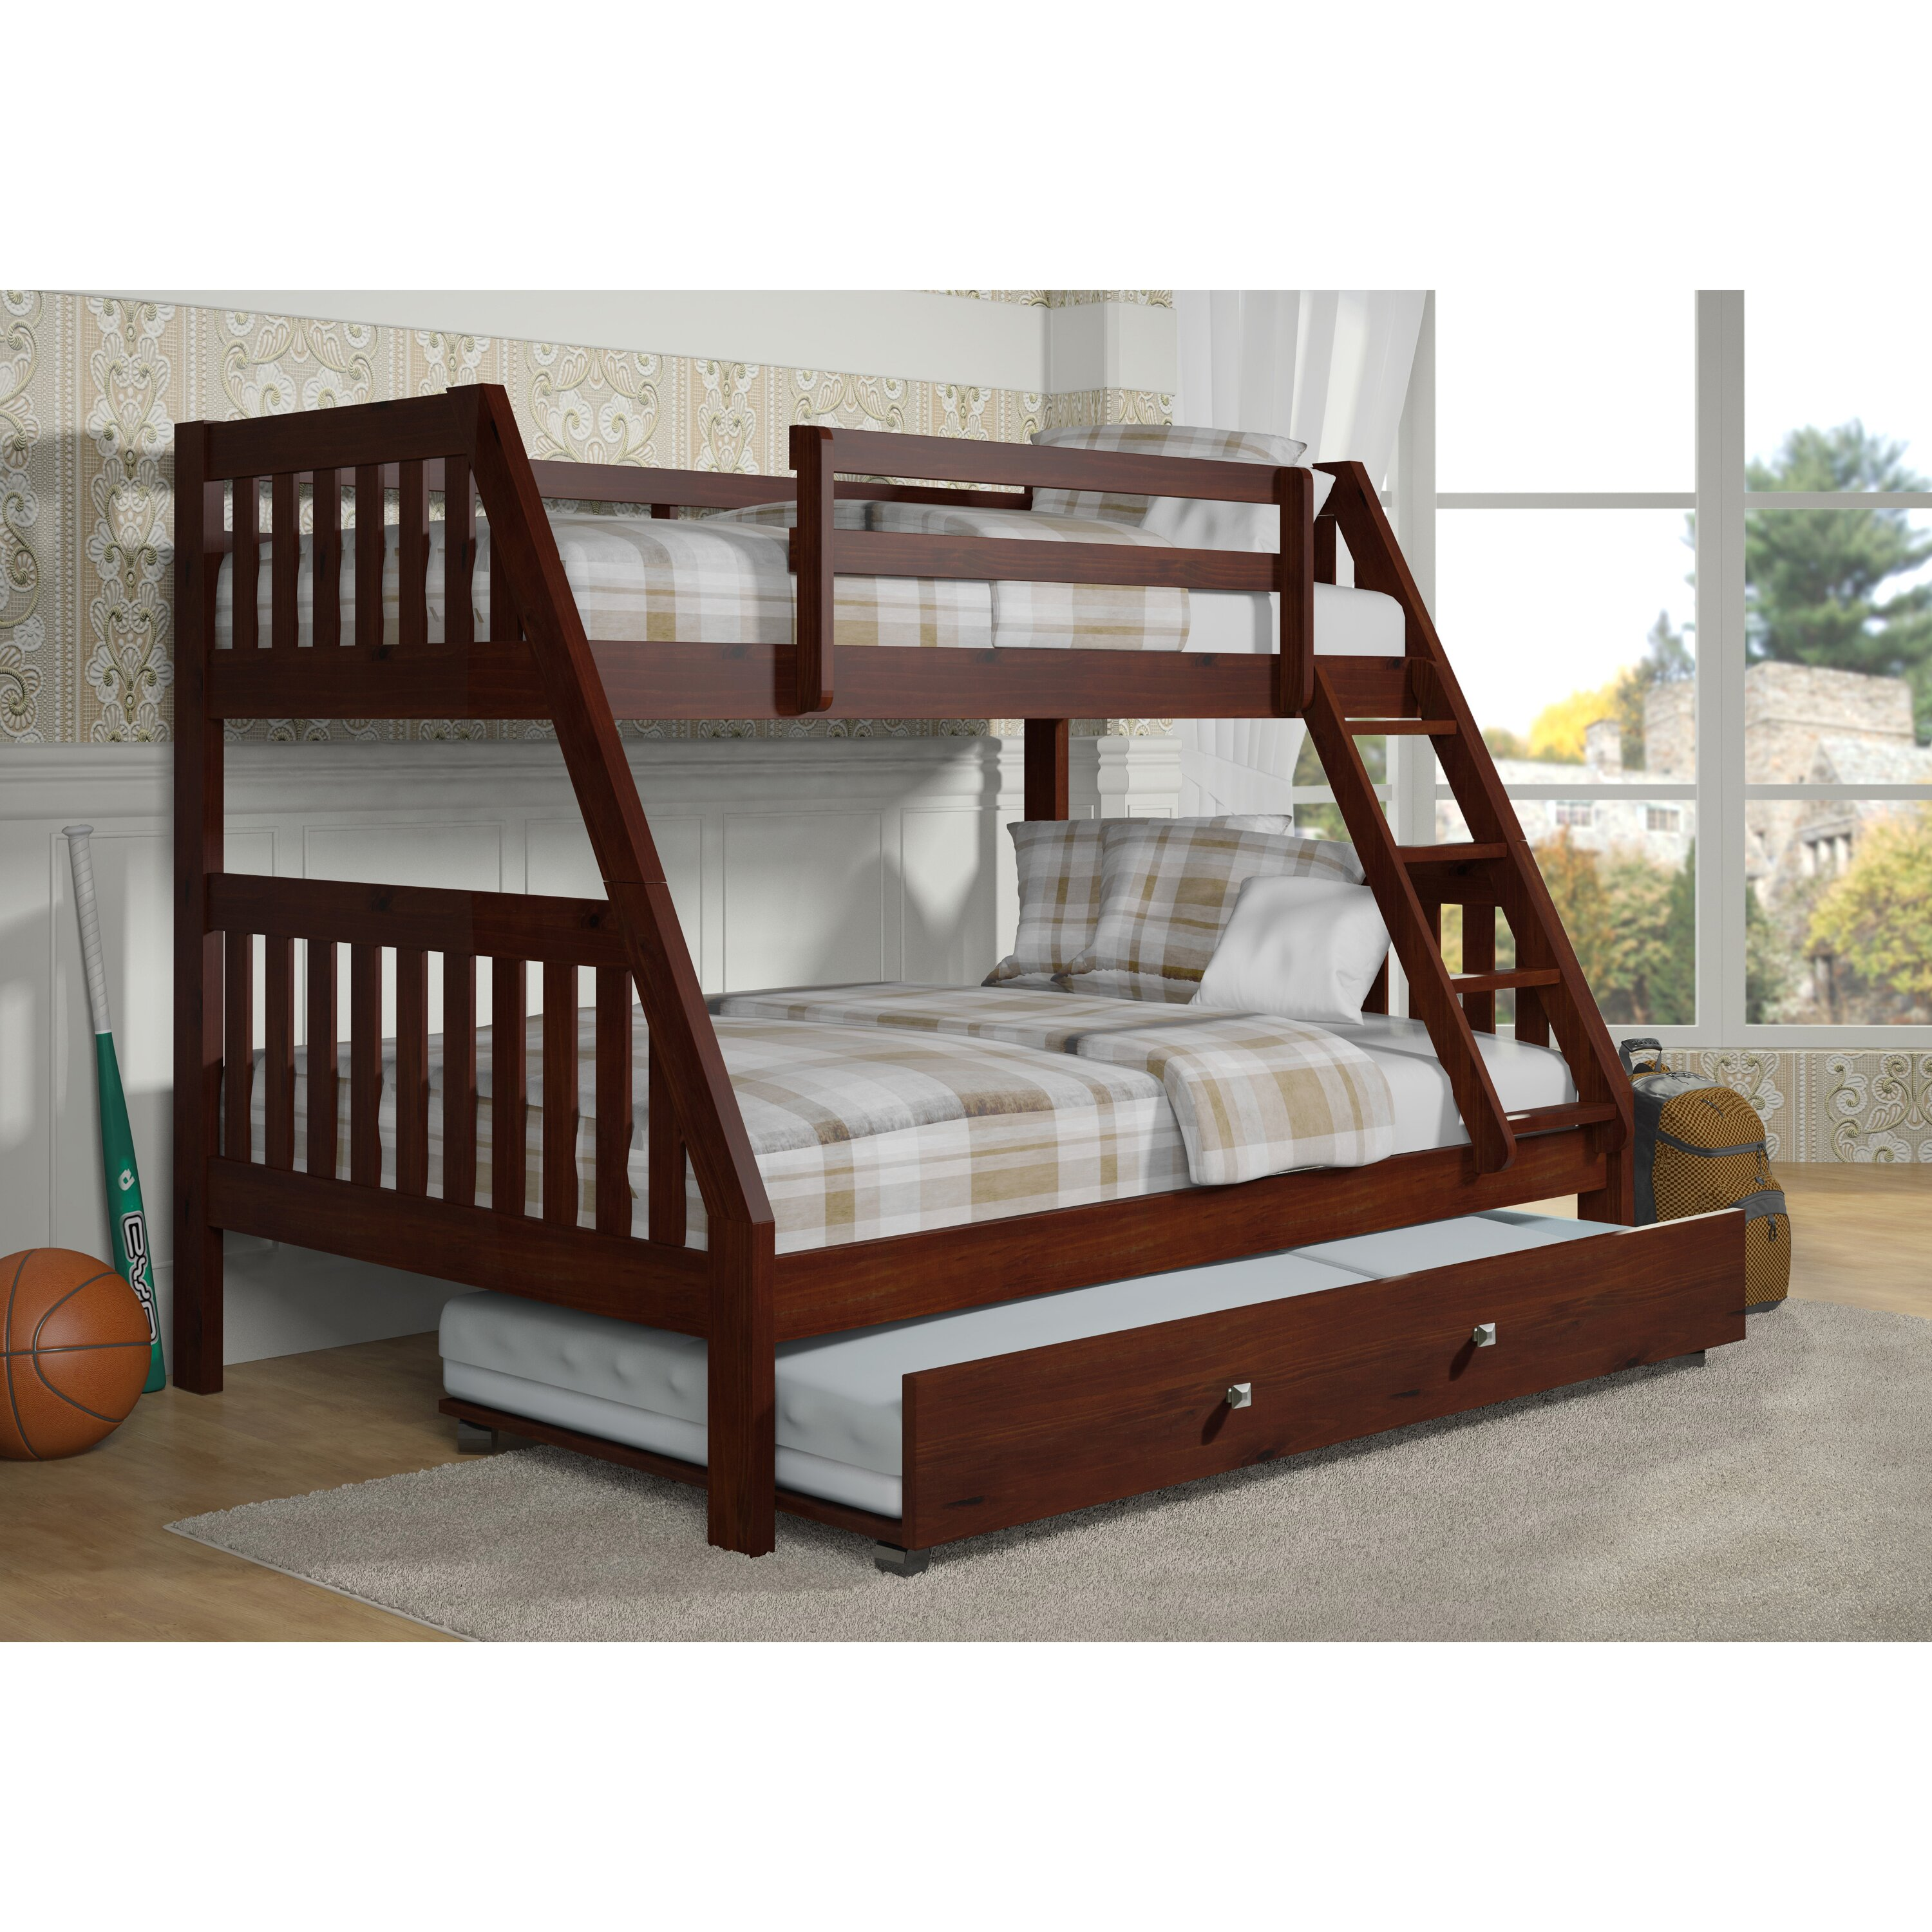 donco kids washington twin over full bunk bed with trundle reviews wayfair. Black Bedroom Furniture Sets. Home Design Ideas